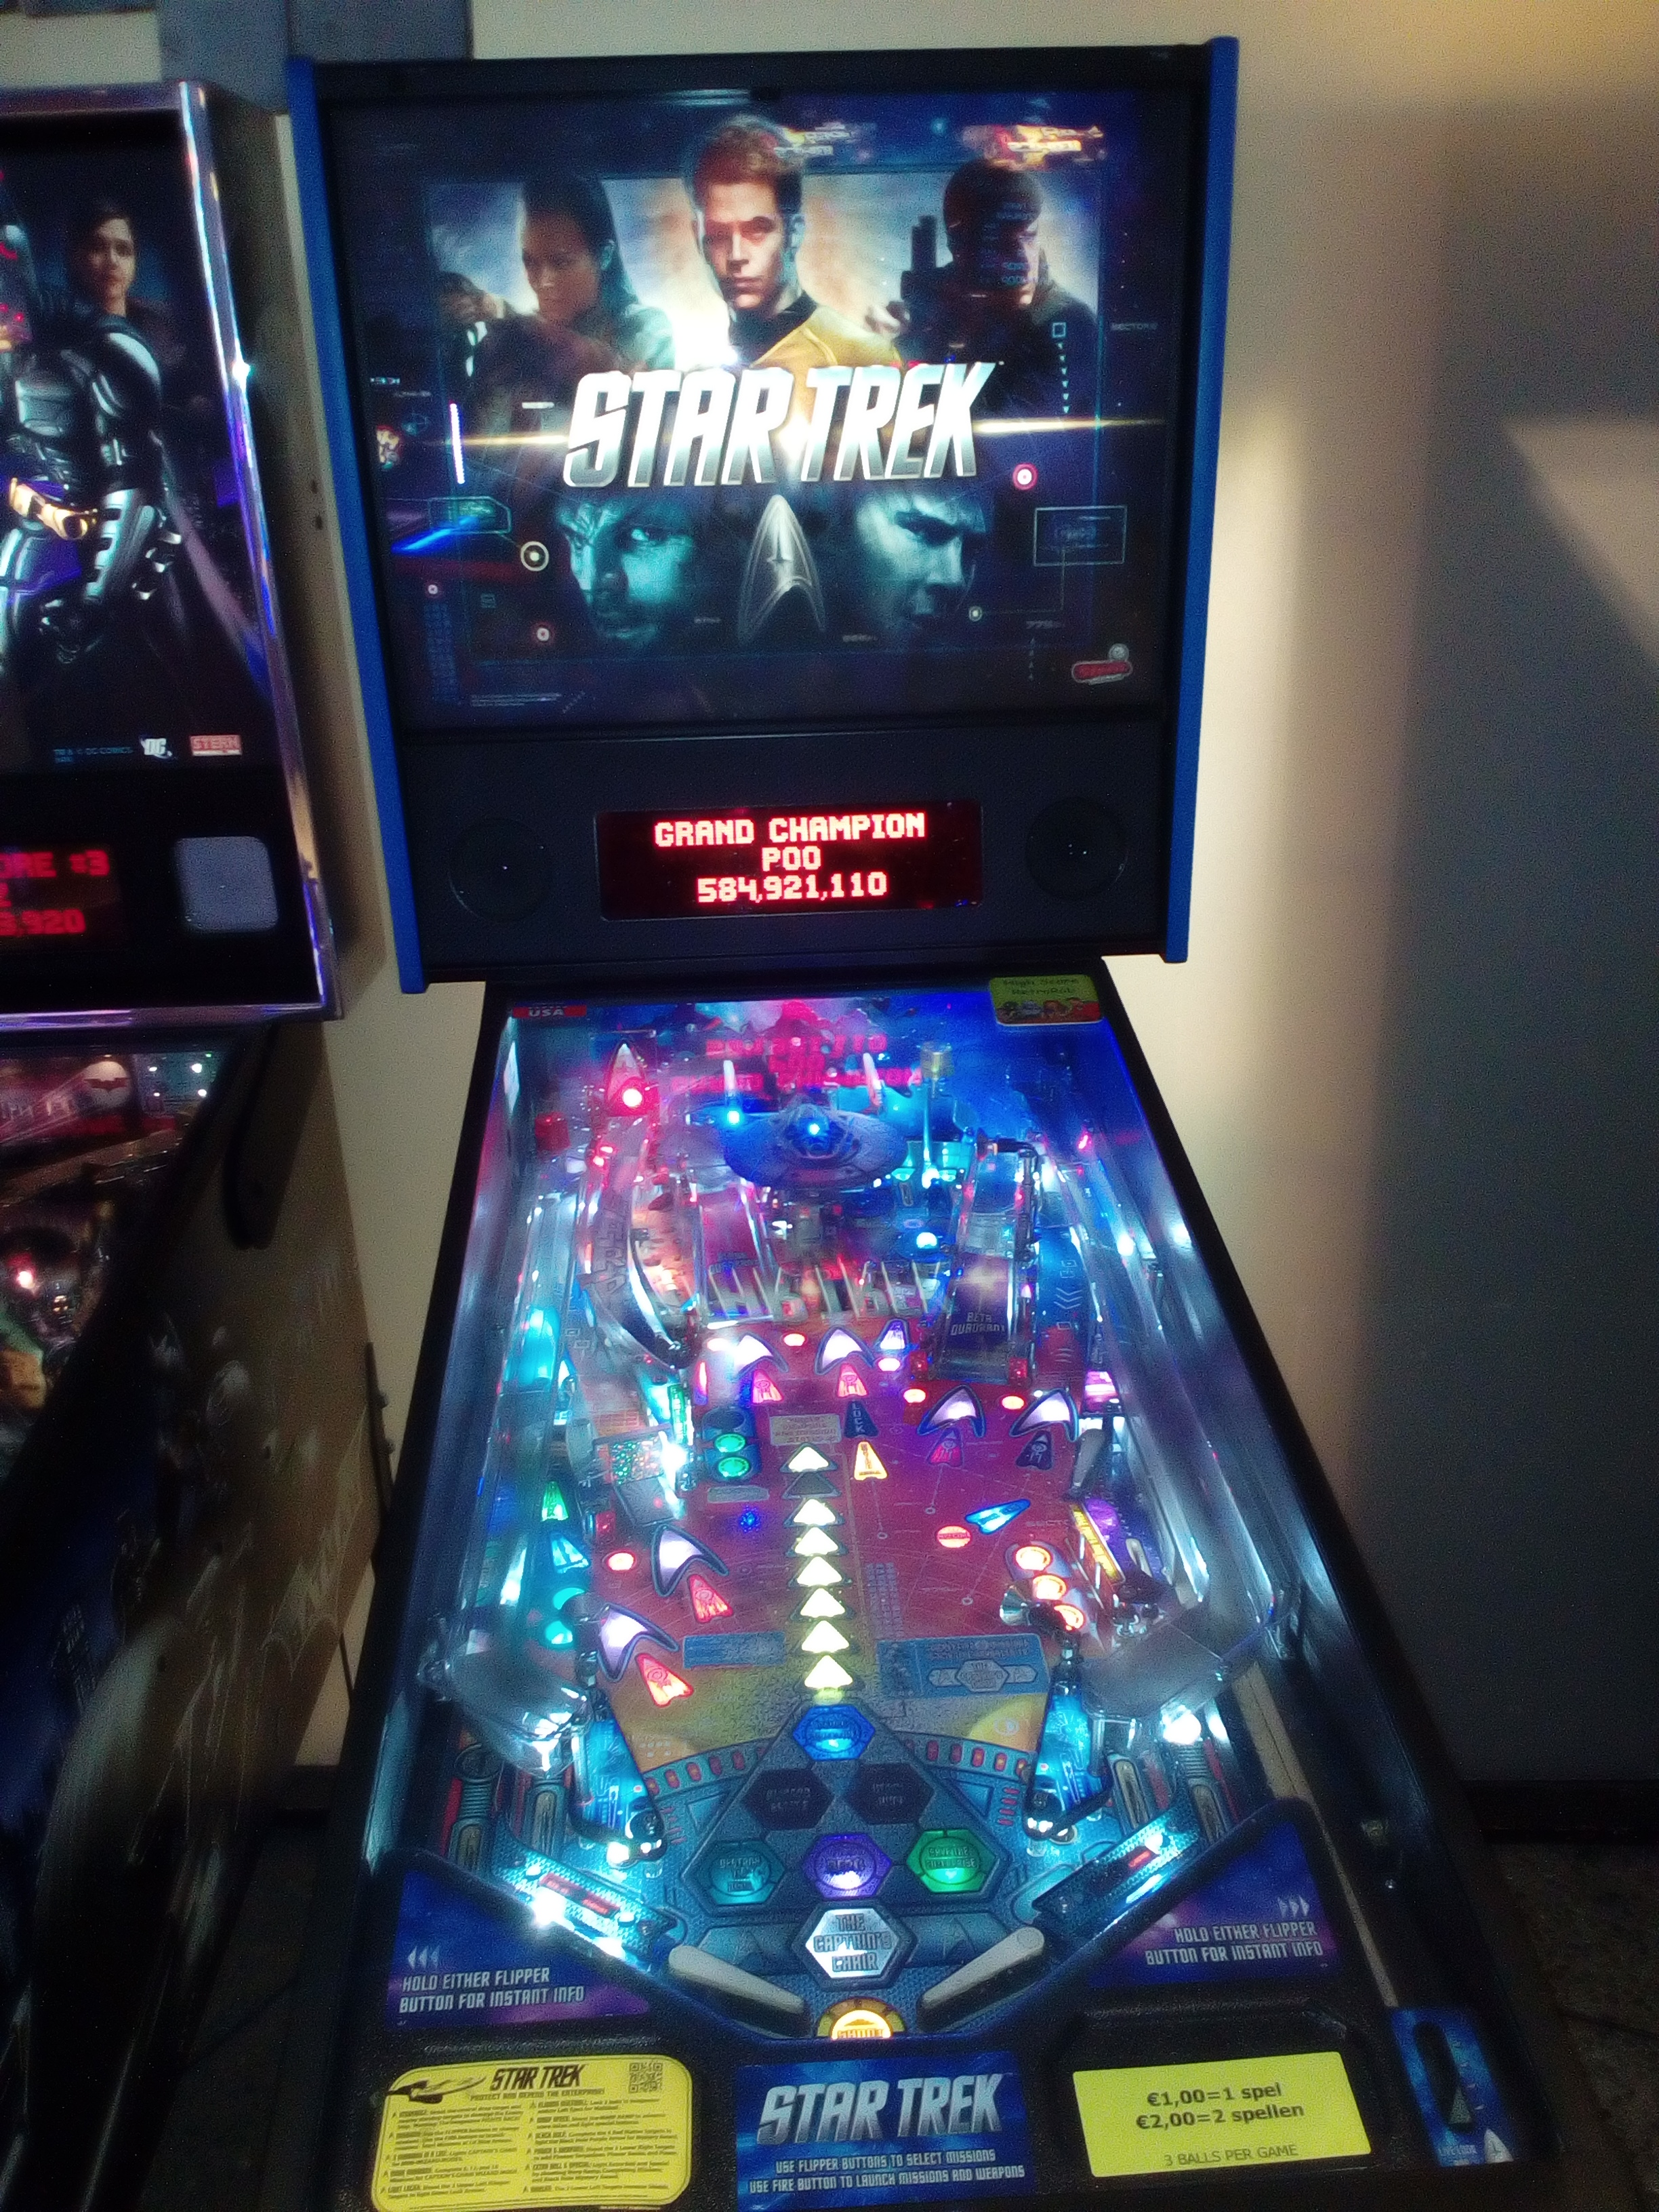 RetroRob: Star Trek (2013 pinball) (Pinball: 3 Balls) 4,900,980 points on 2018-08-02 14:00:56